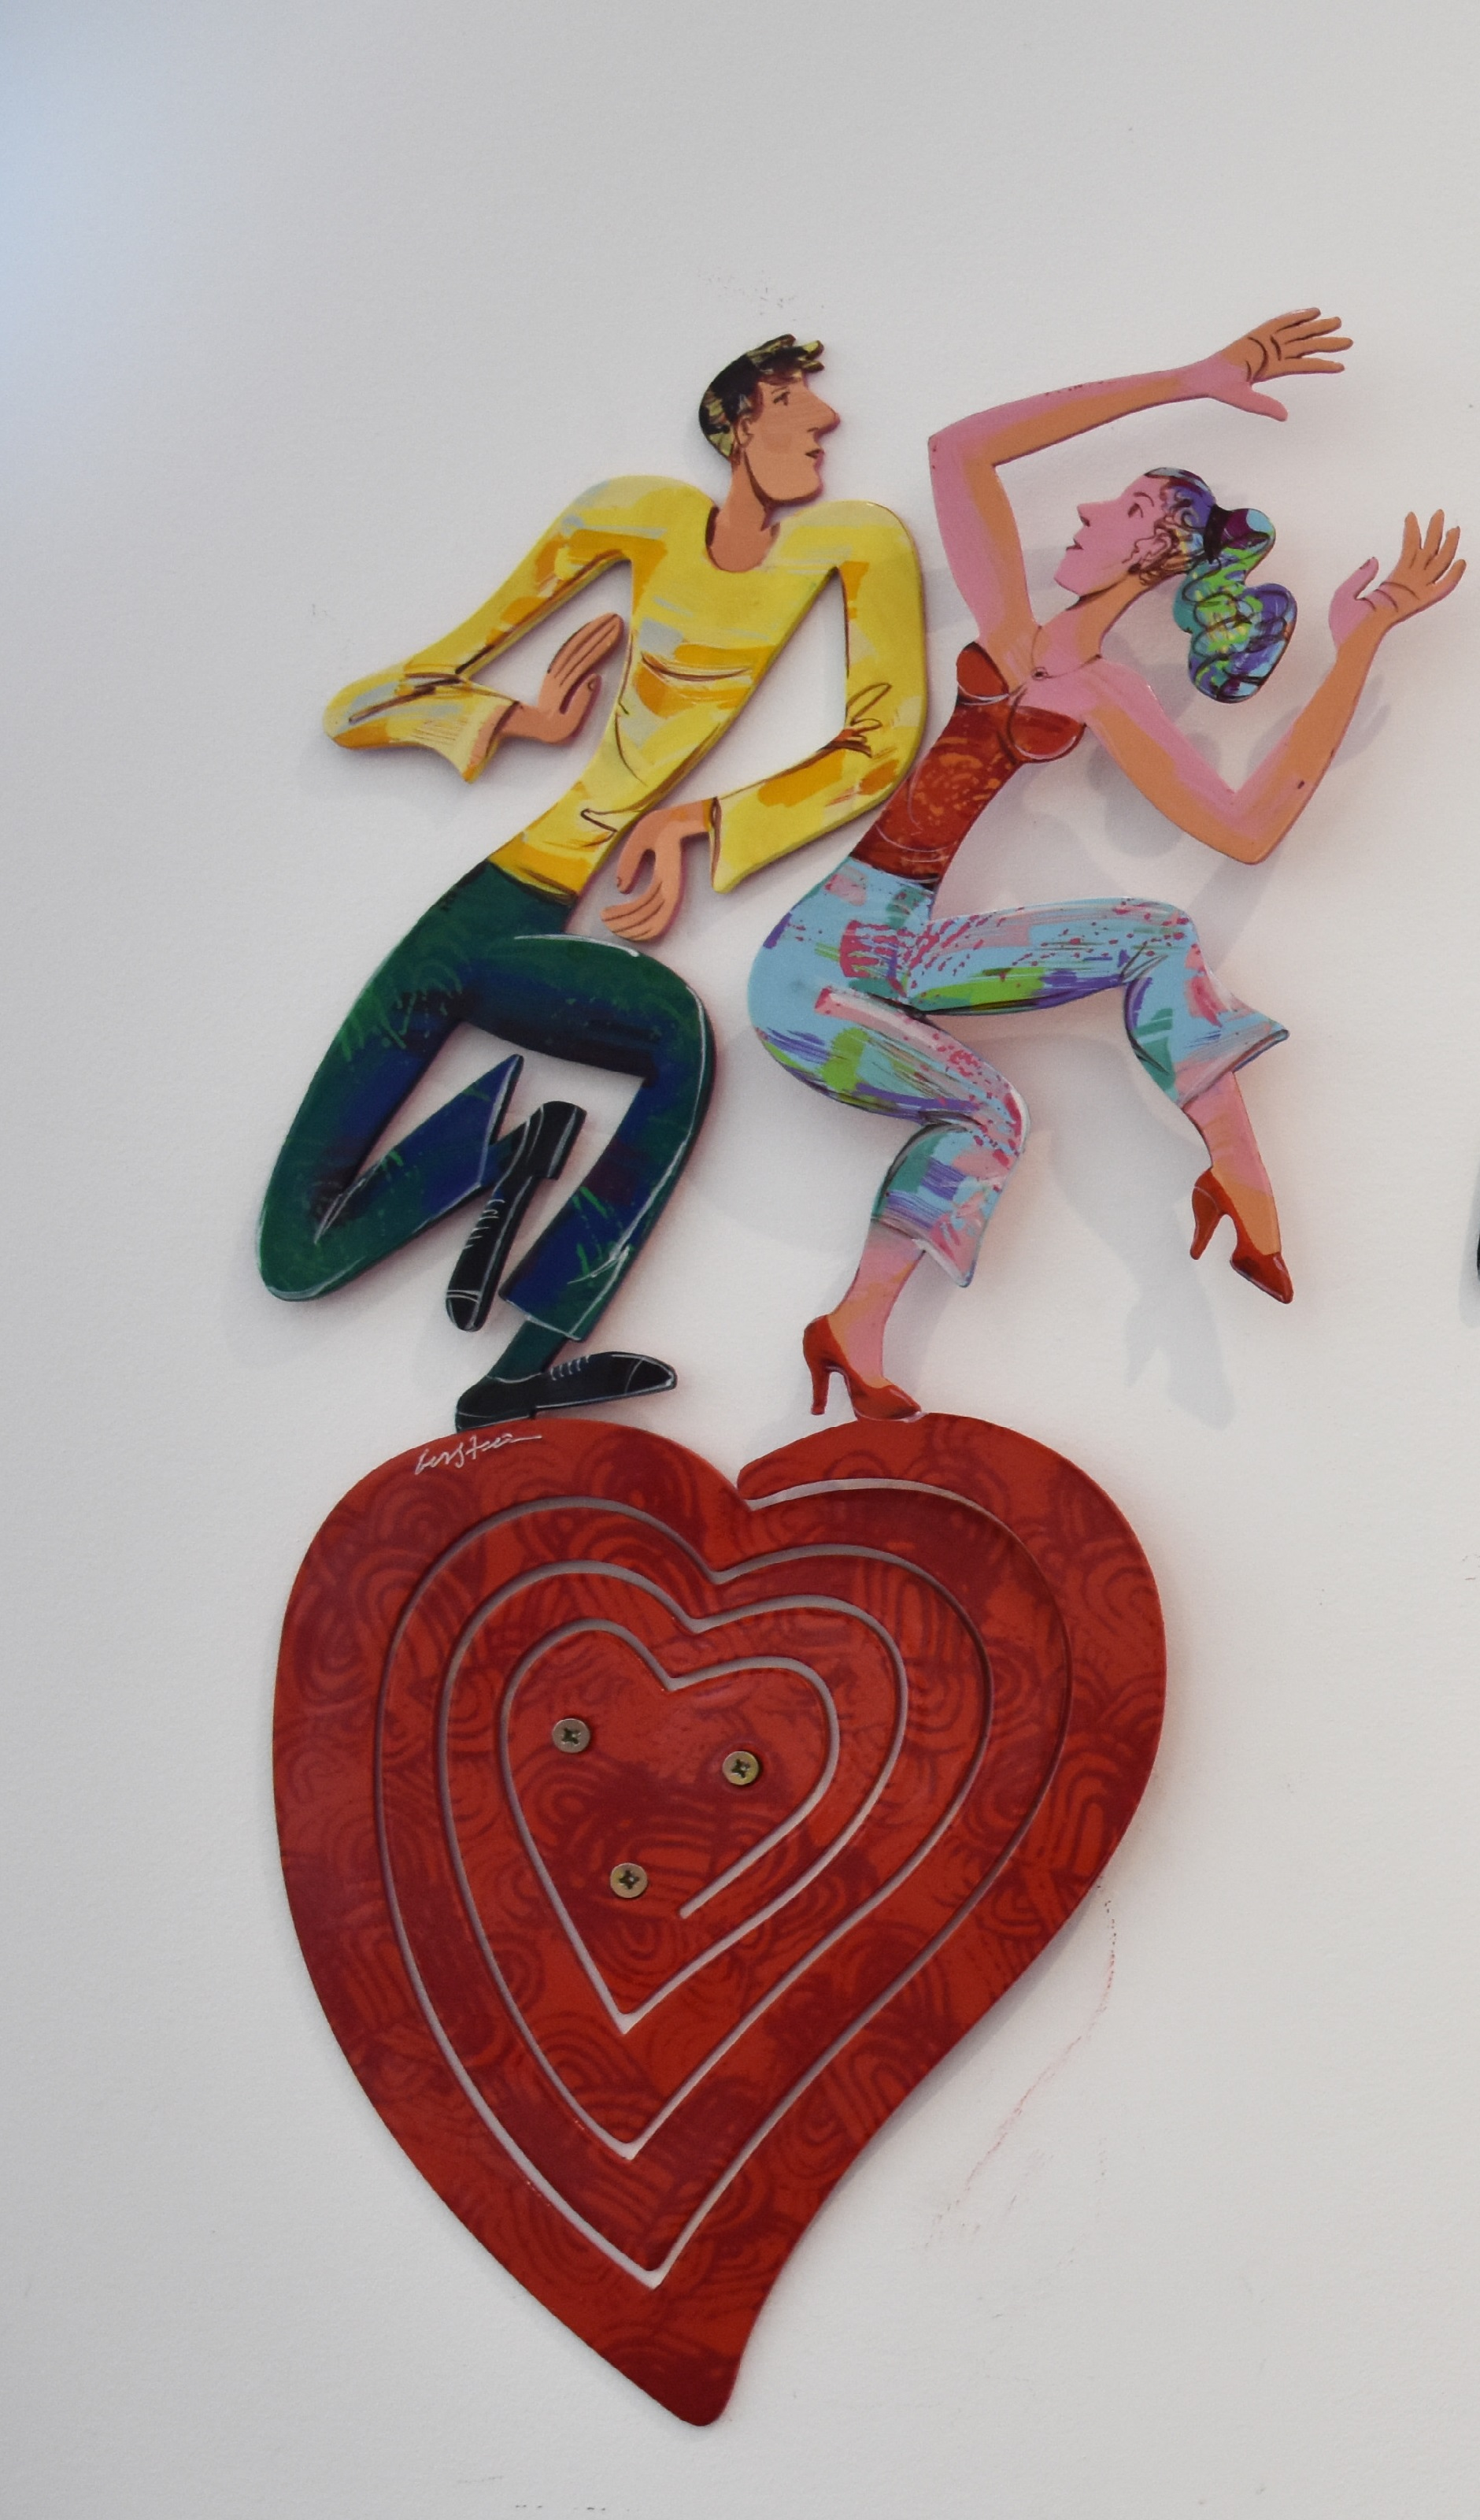 Dancing Heart - Hand painted cutout steel, 1 layer60 x 31 cm